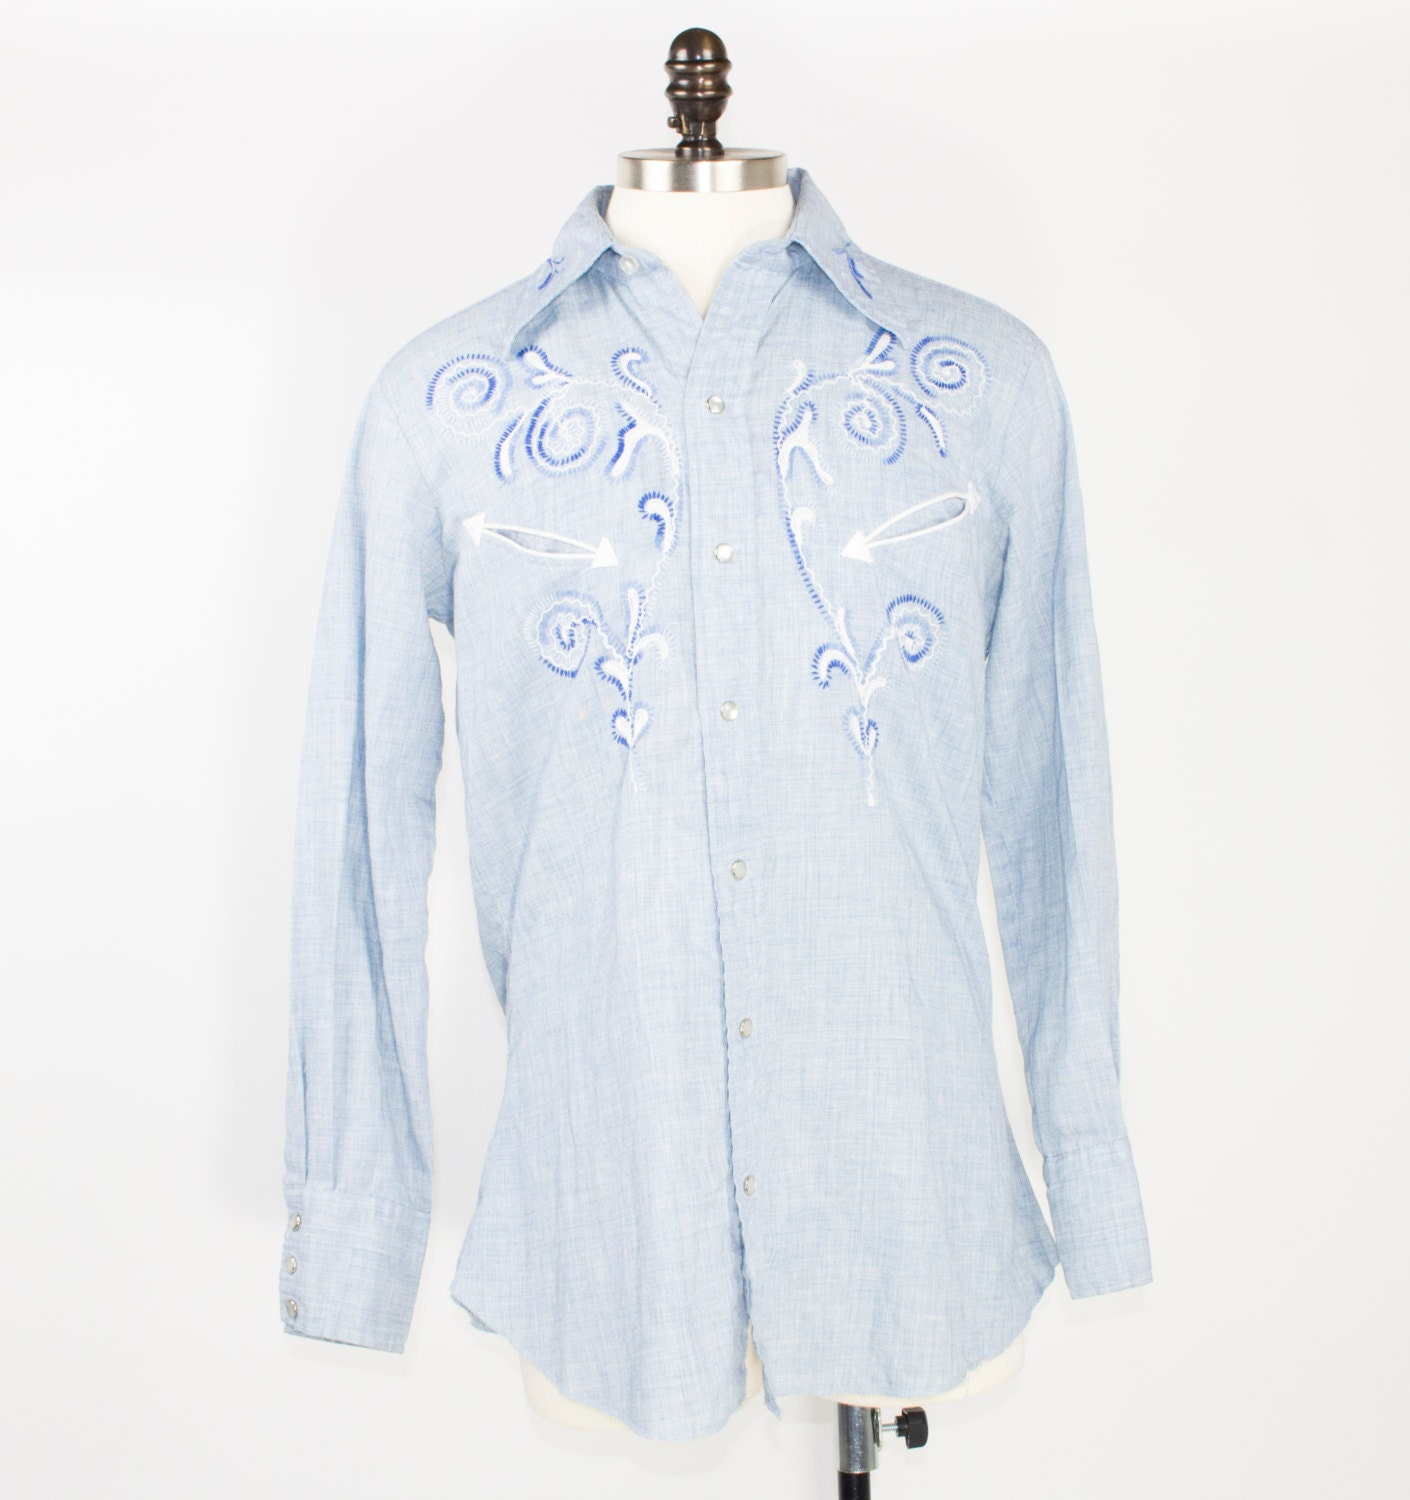 Pearl-Snap Shirts. A Texas twist on the button-up, the pearl-snap shirt has been a wardrobe staple among the cowboy (and cowgirl) set since the fifties. Stitched yokes and flap pockets give it.